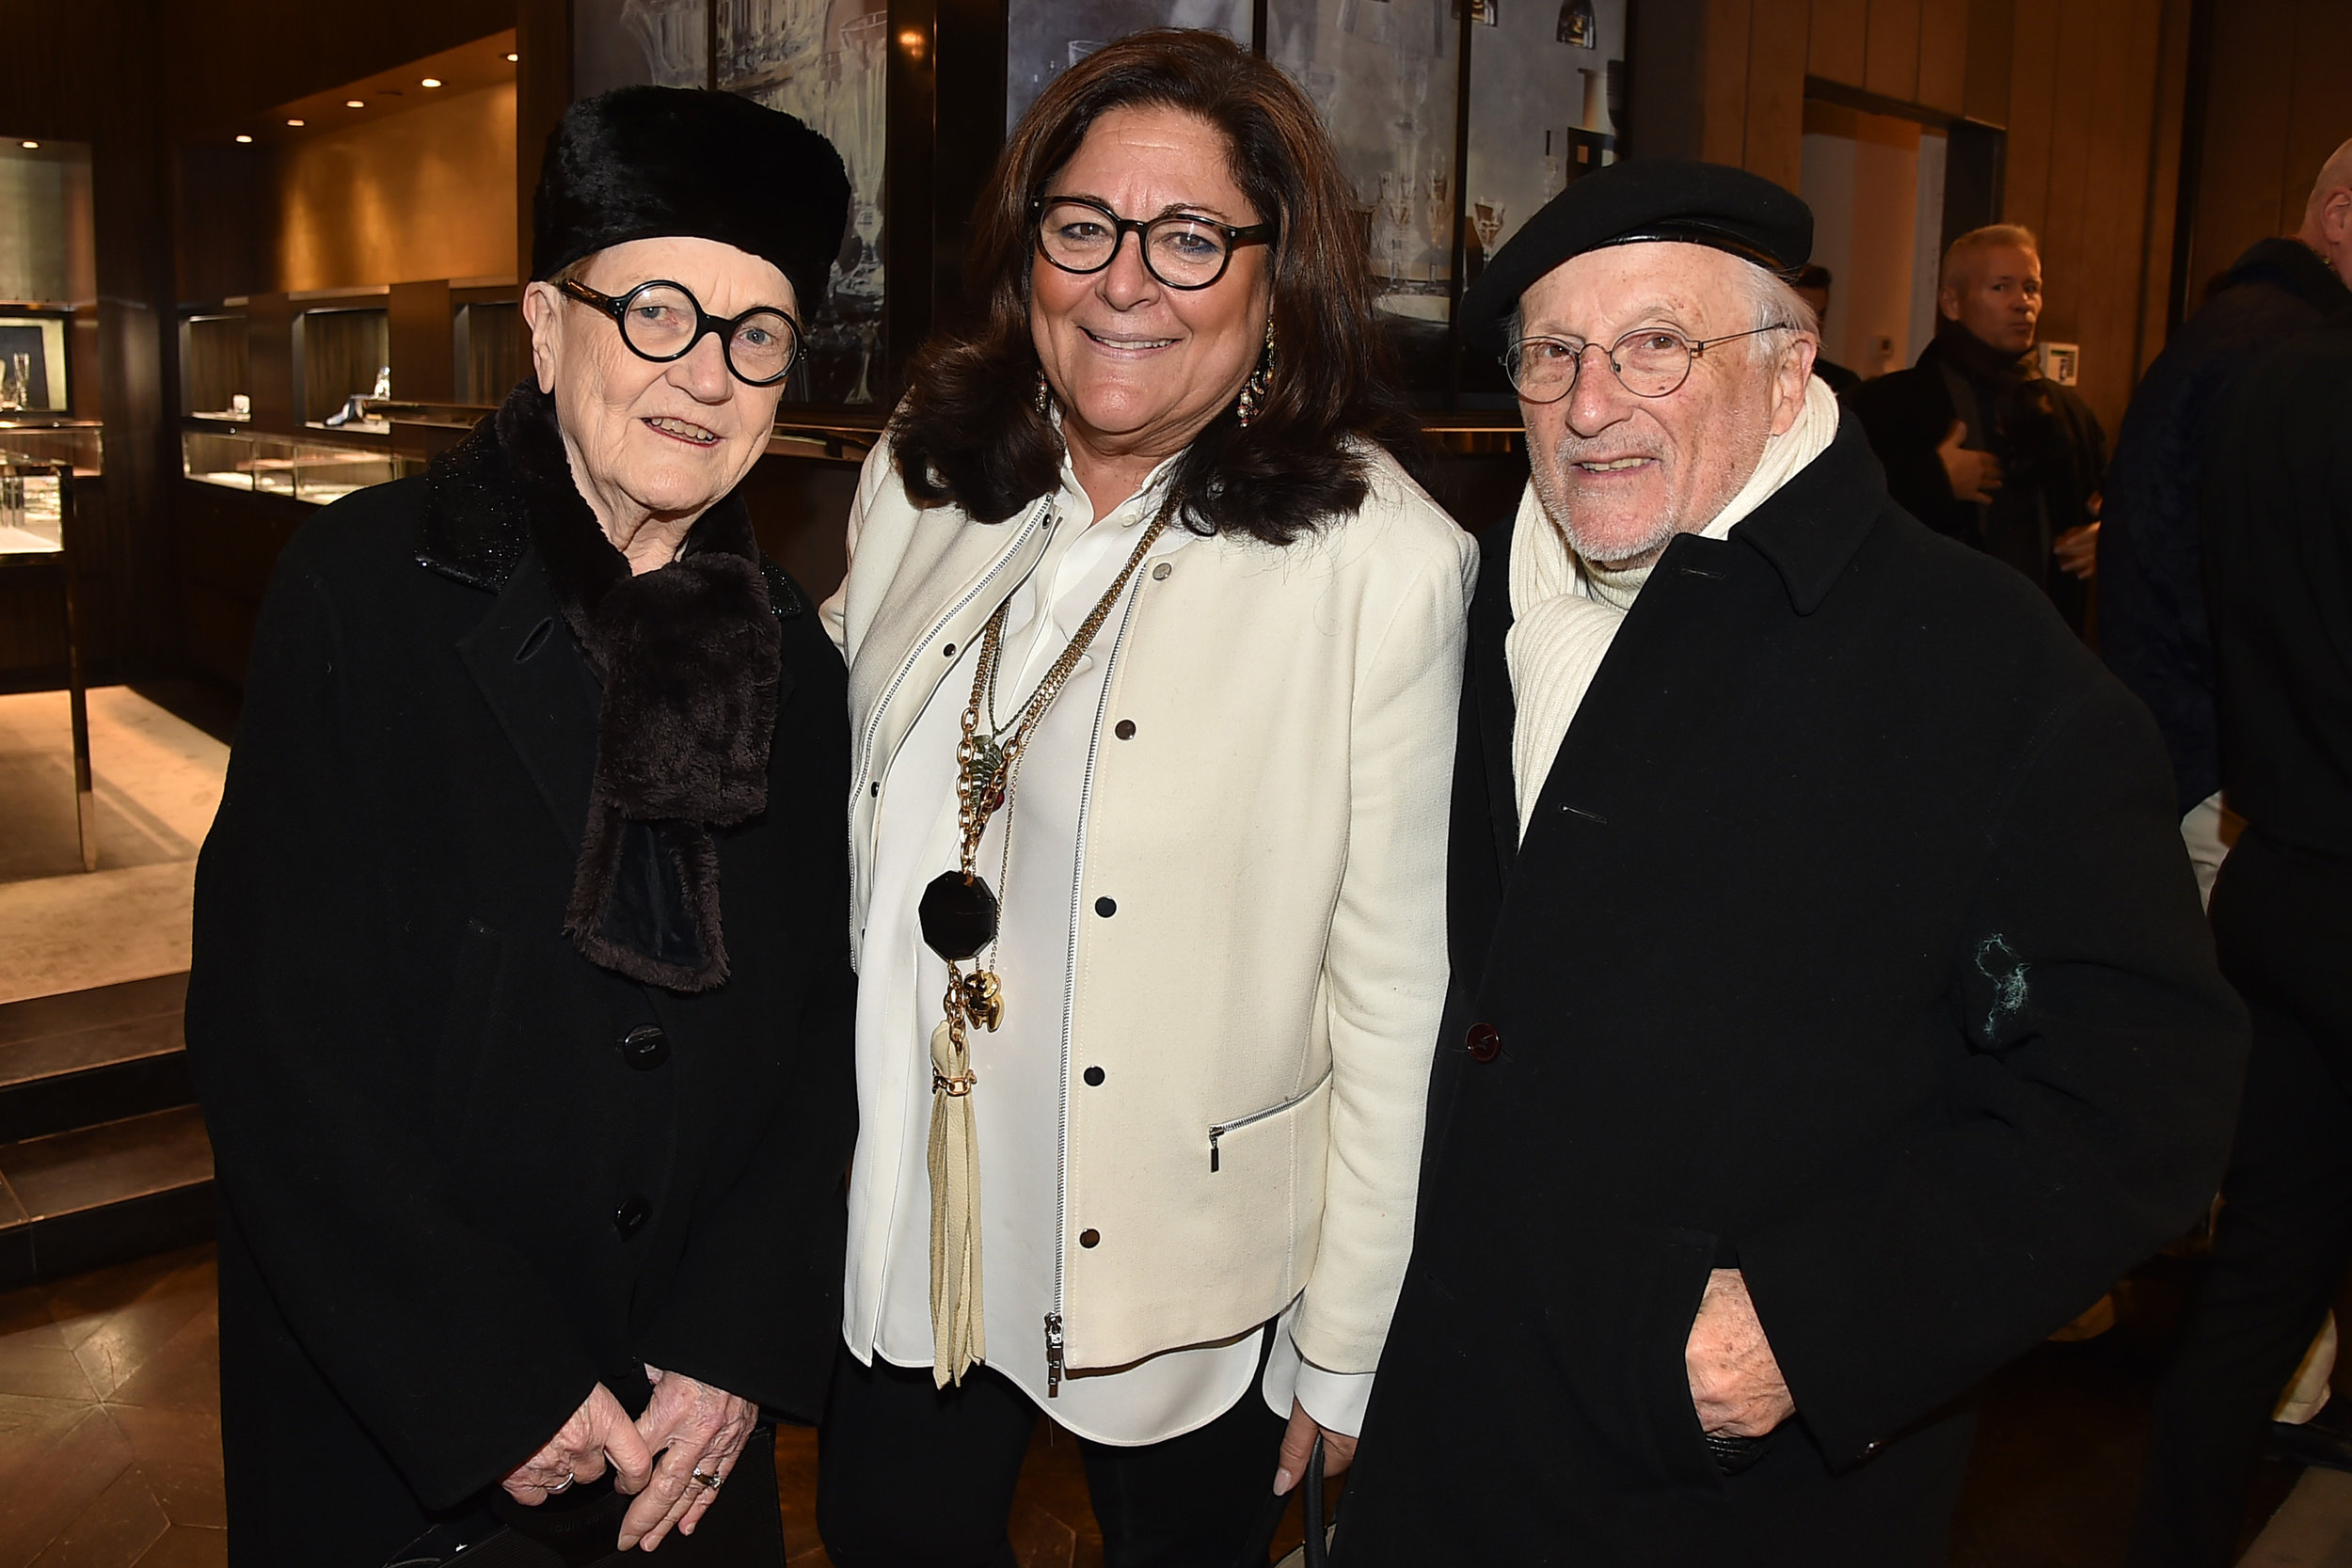 Marylou with fashion legends Fern Mallis and Stan Herman